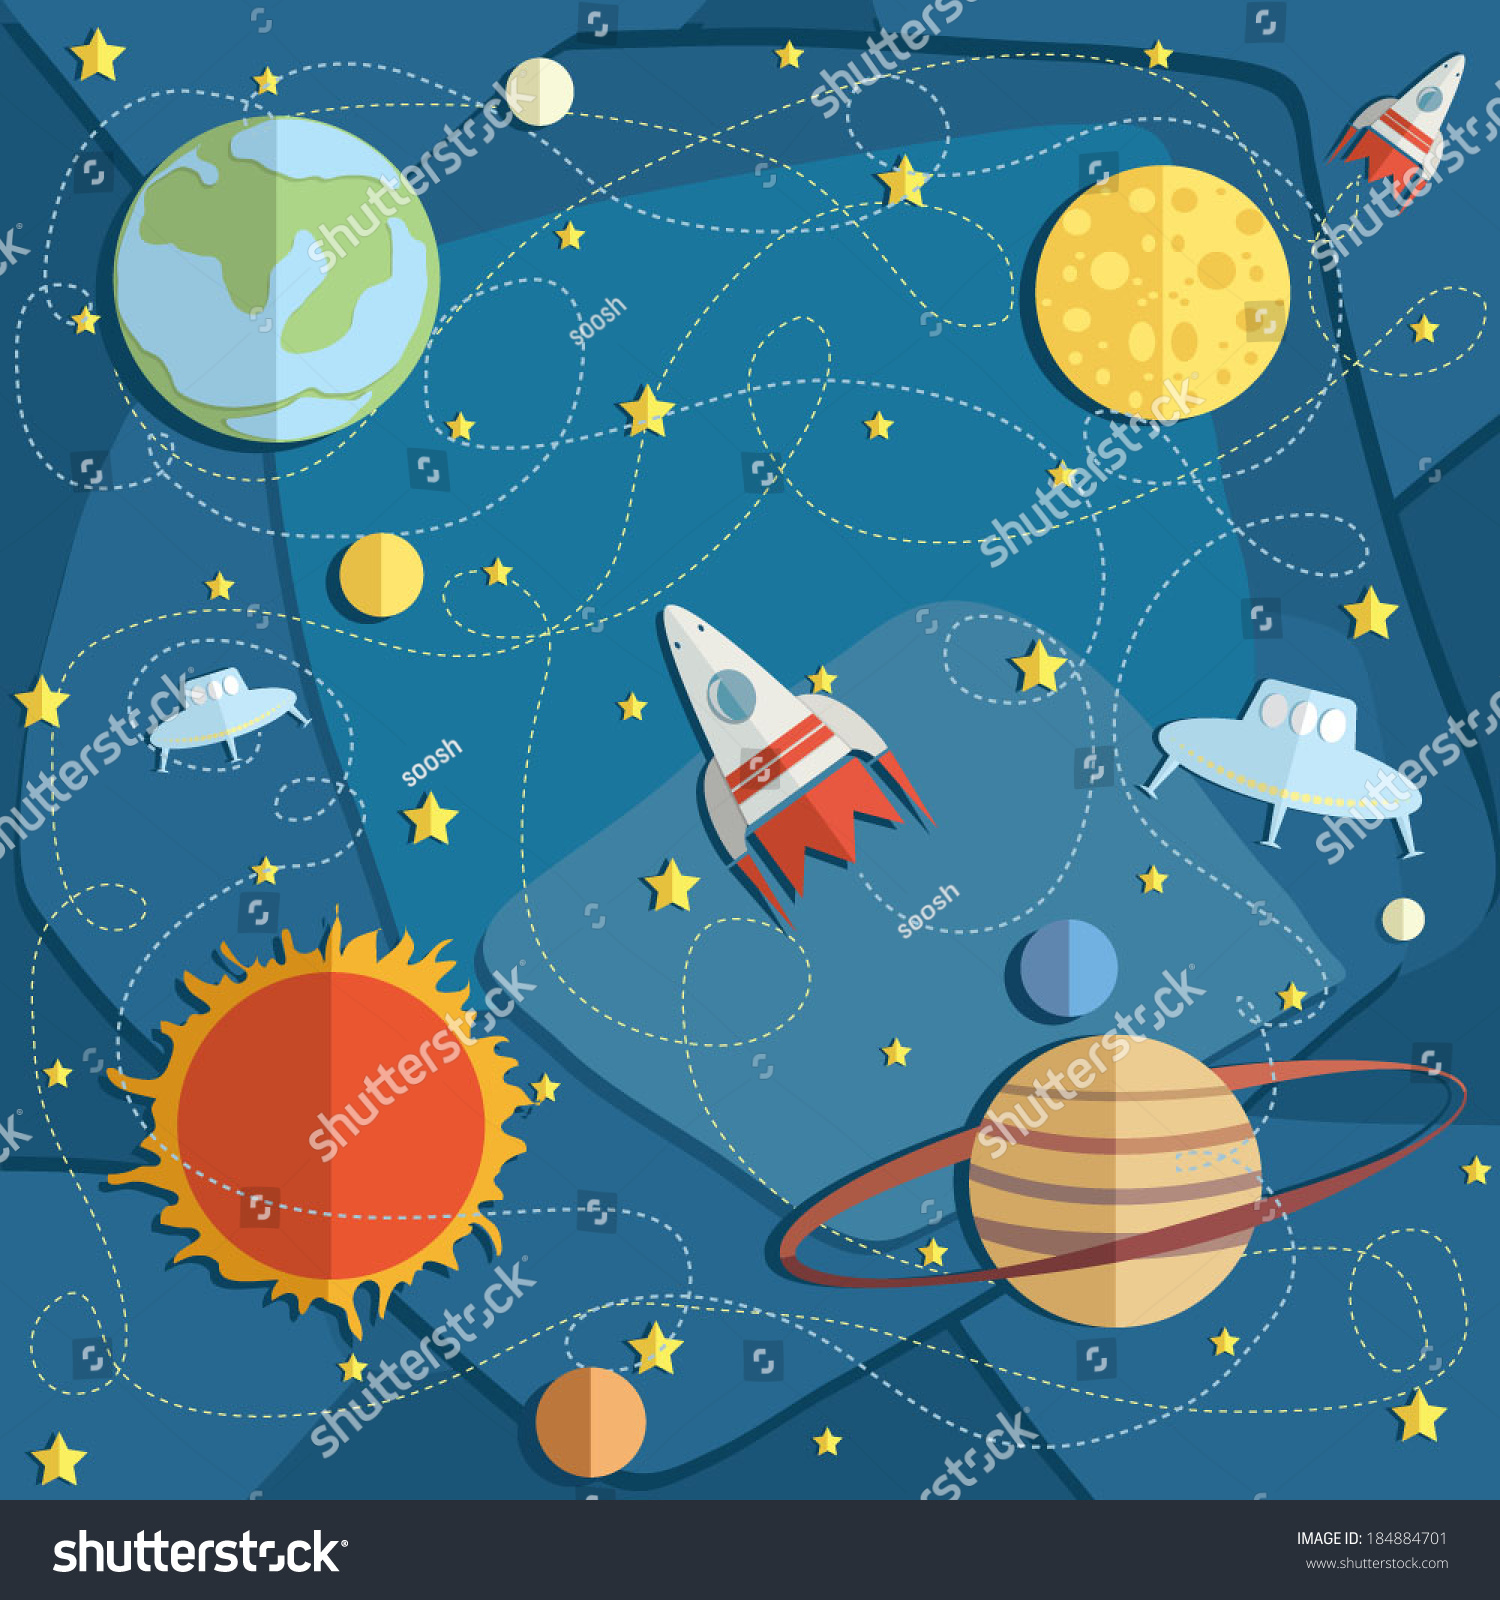 essay on space travel for kids Free space travel papers, essays, and research papers.